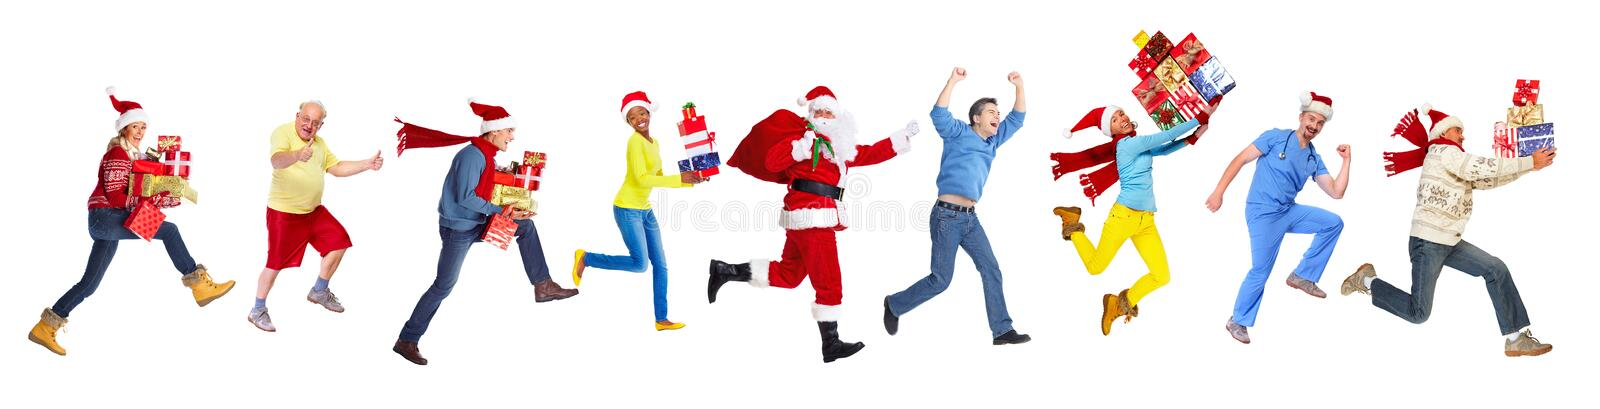 Povos running felizes do Natal fotografia de stock